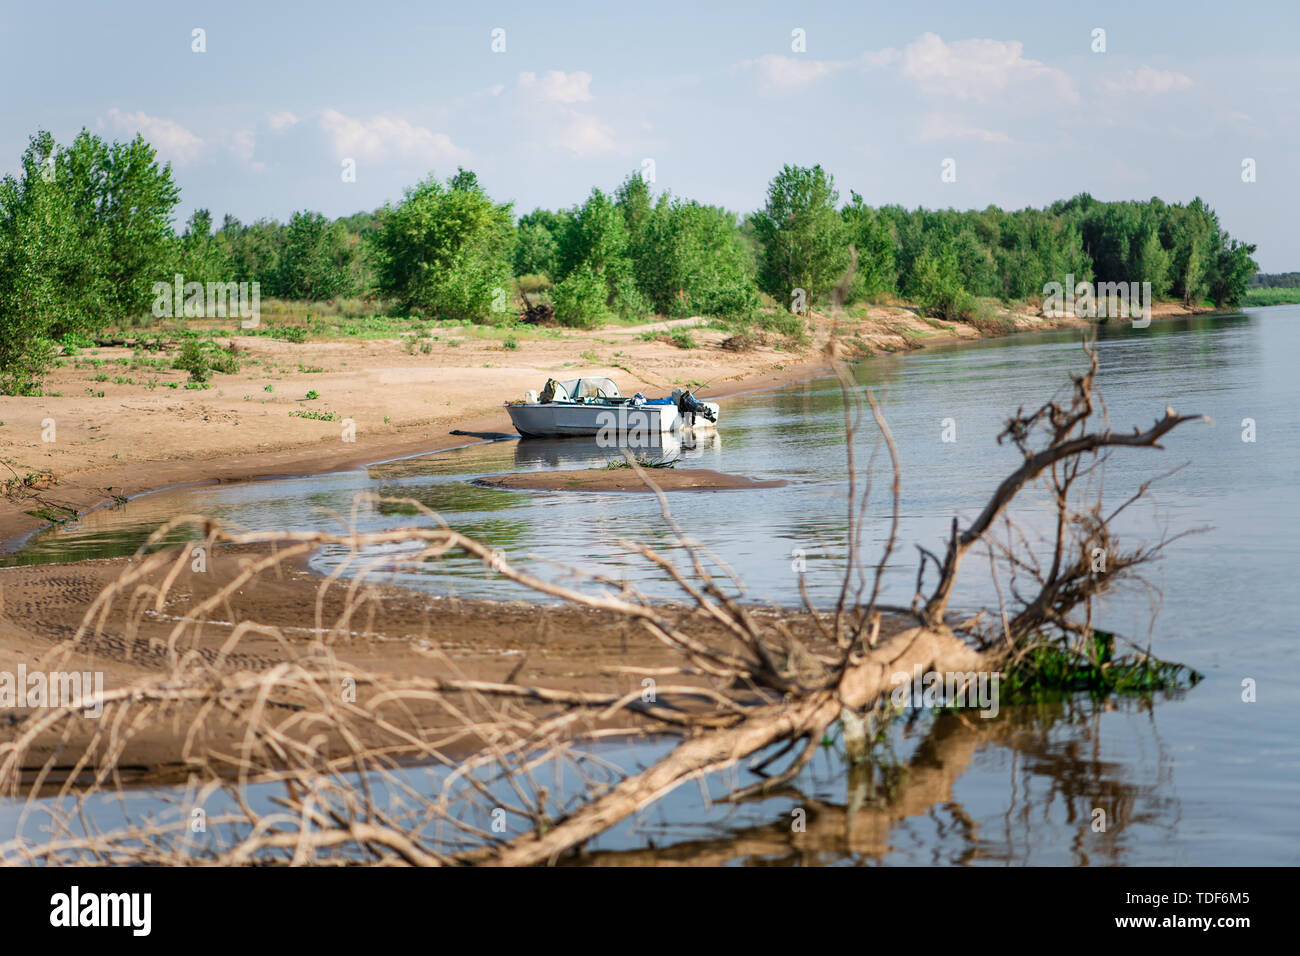 The motor boat is anchored on a sandy island with green summer and grass in the river in the foreground an old wooden snag - Stock Image